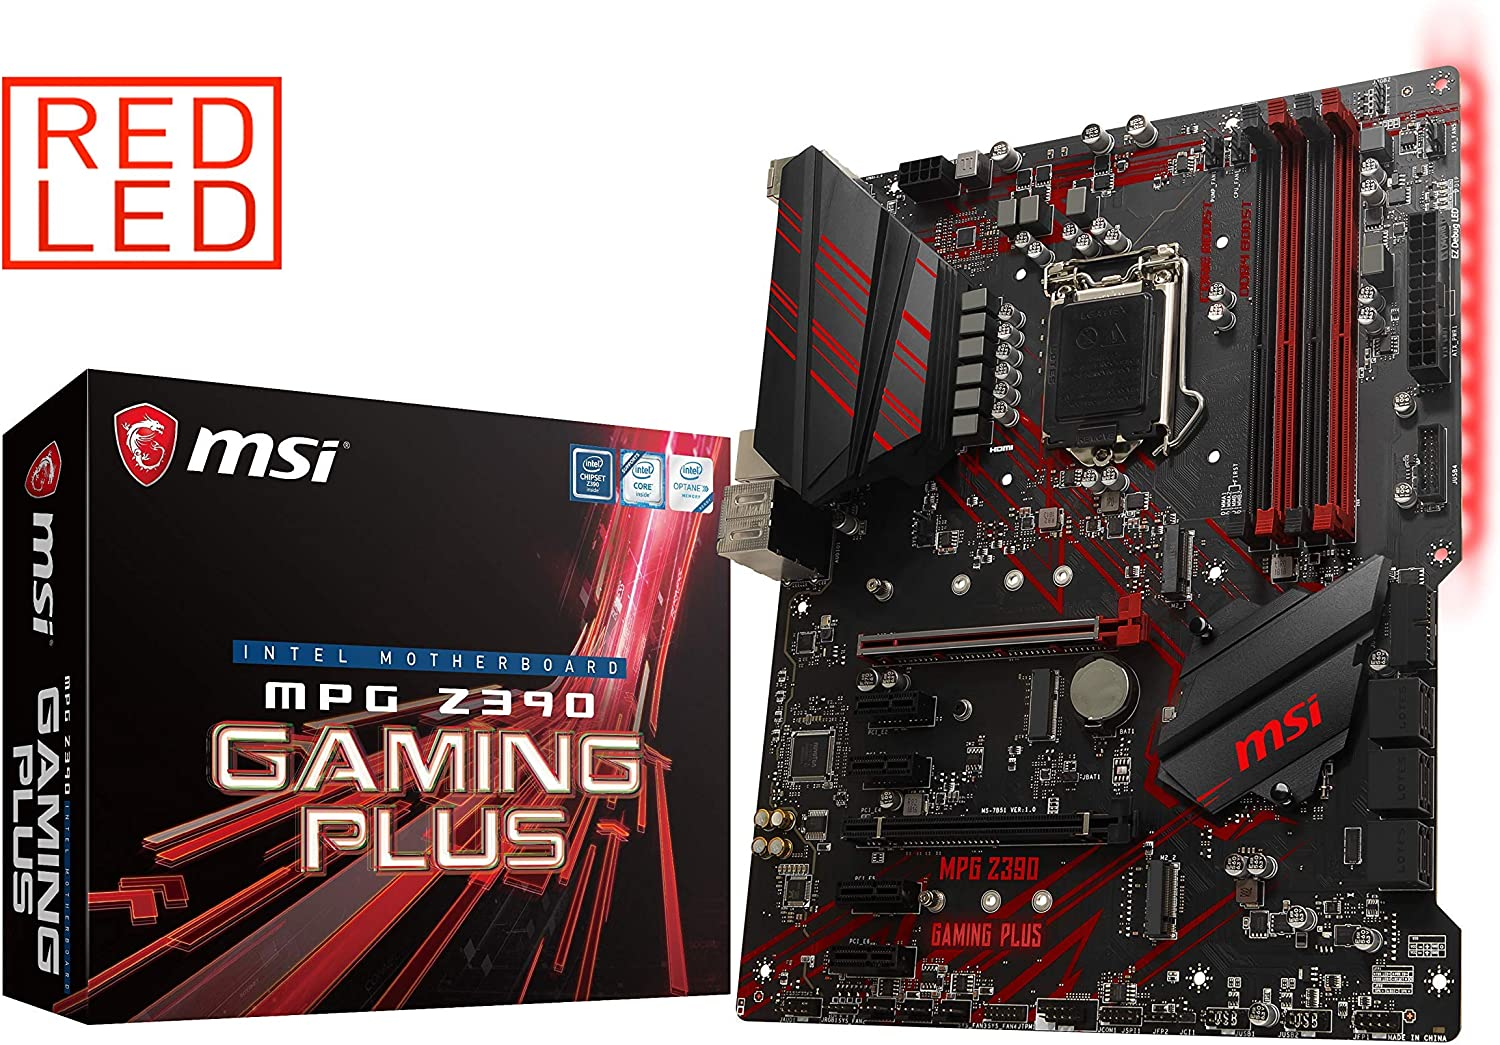 MSI MPG Z390 Gaming Plus LGA1151 (Intel 8th and 9th Gen) M.2 USB 3.1 Gen 2 DDR4 HDMI DVI CFX ATX Z390 Gaming Motherboard (Renewed)